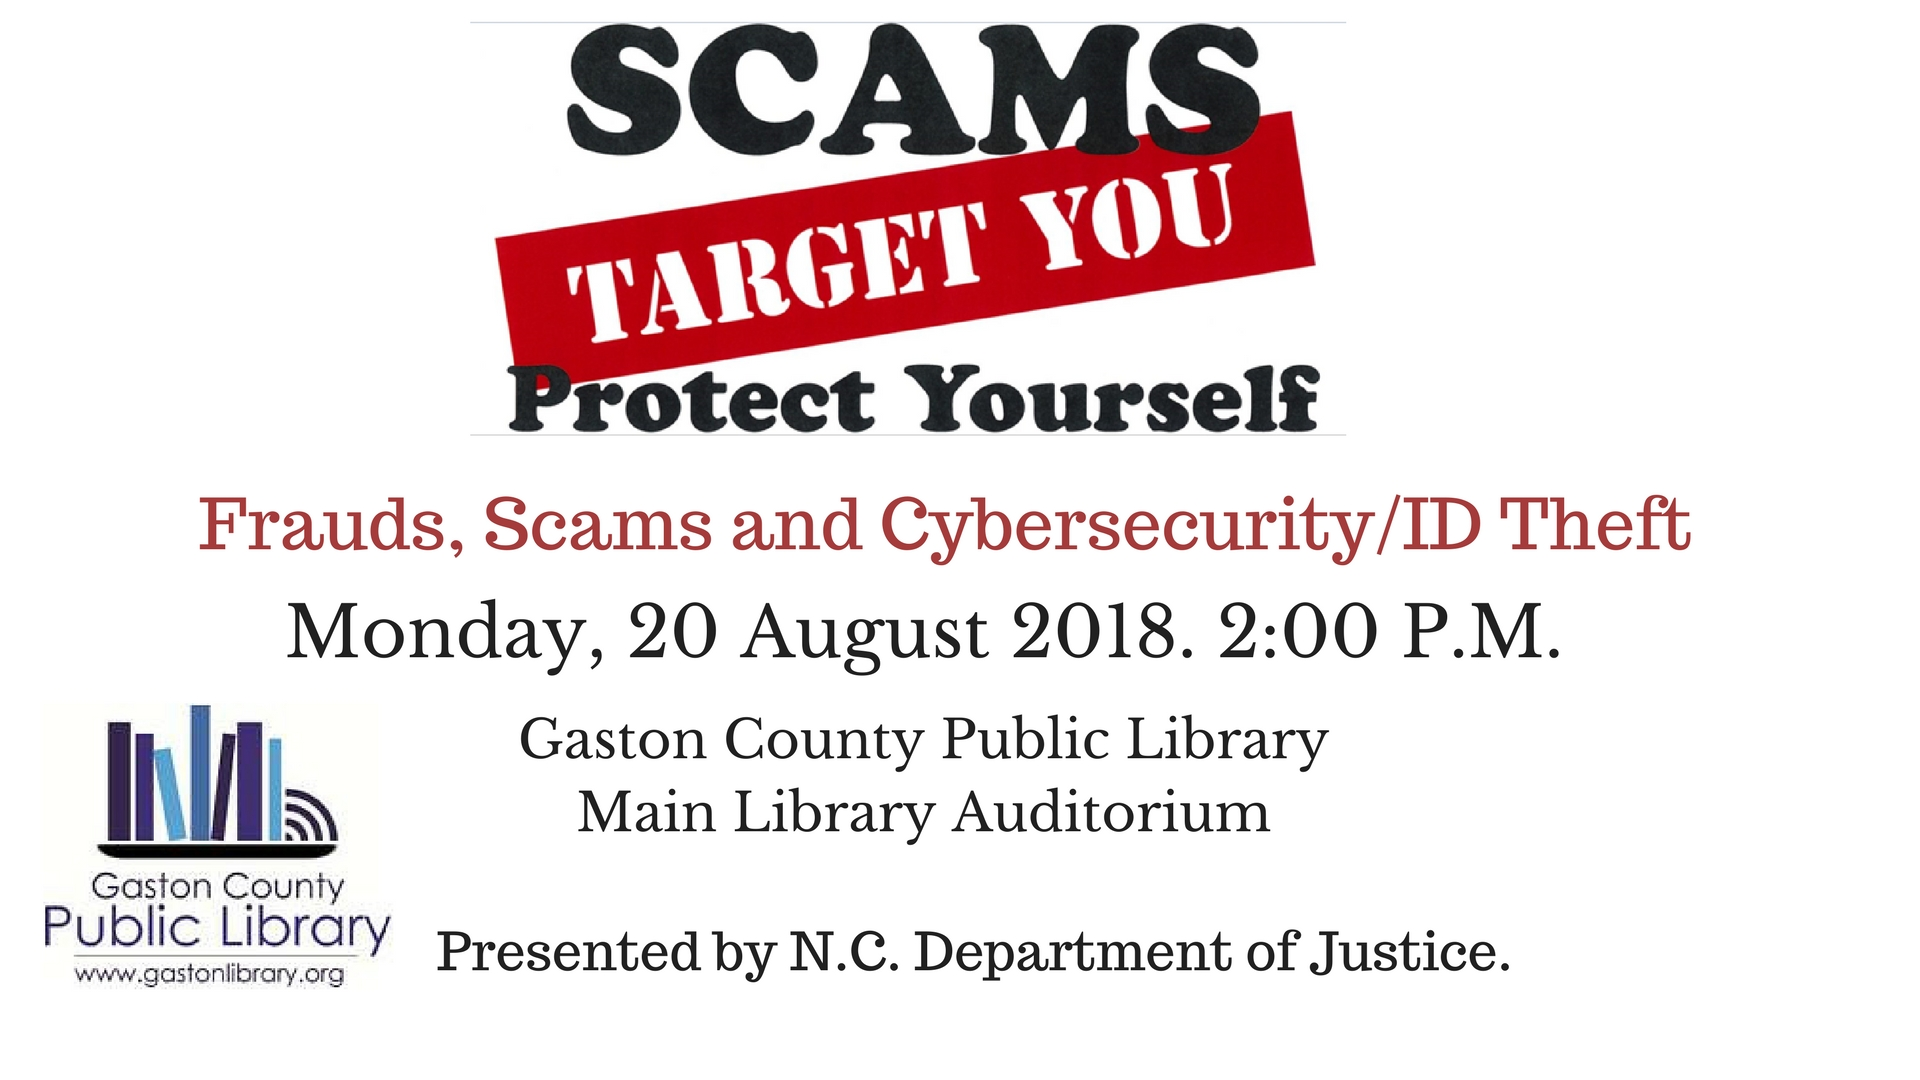 Protect Yourself from Scams, Frauds, and Cybersecurity/Identity Theft Threats